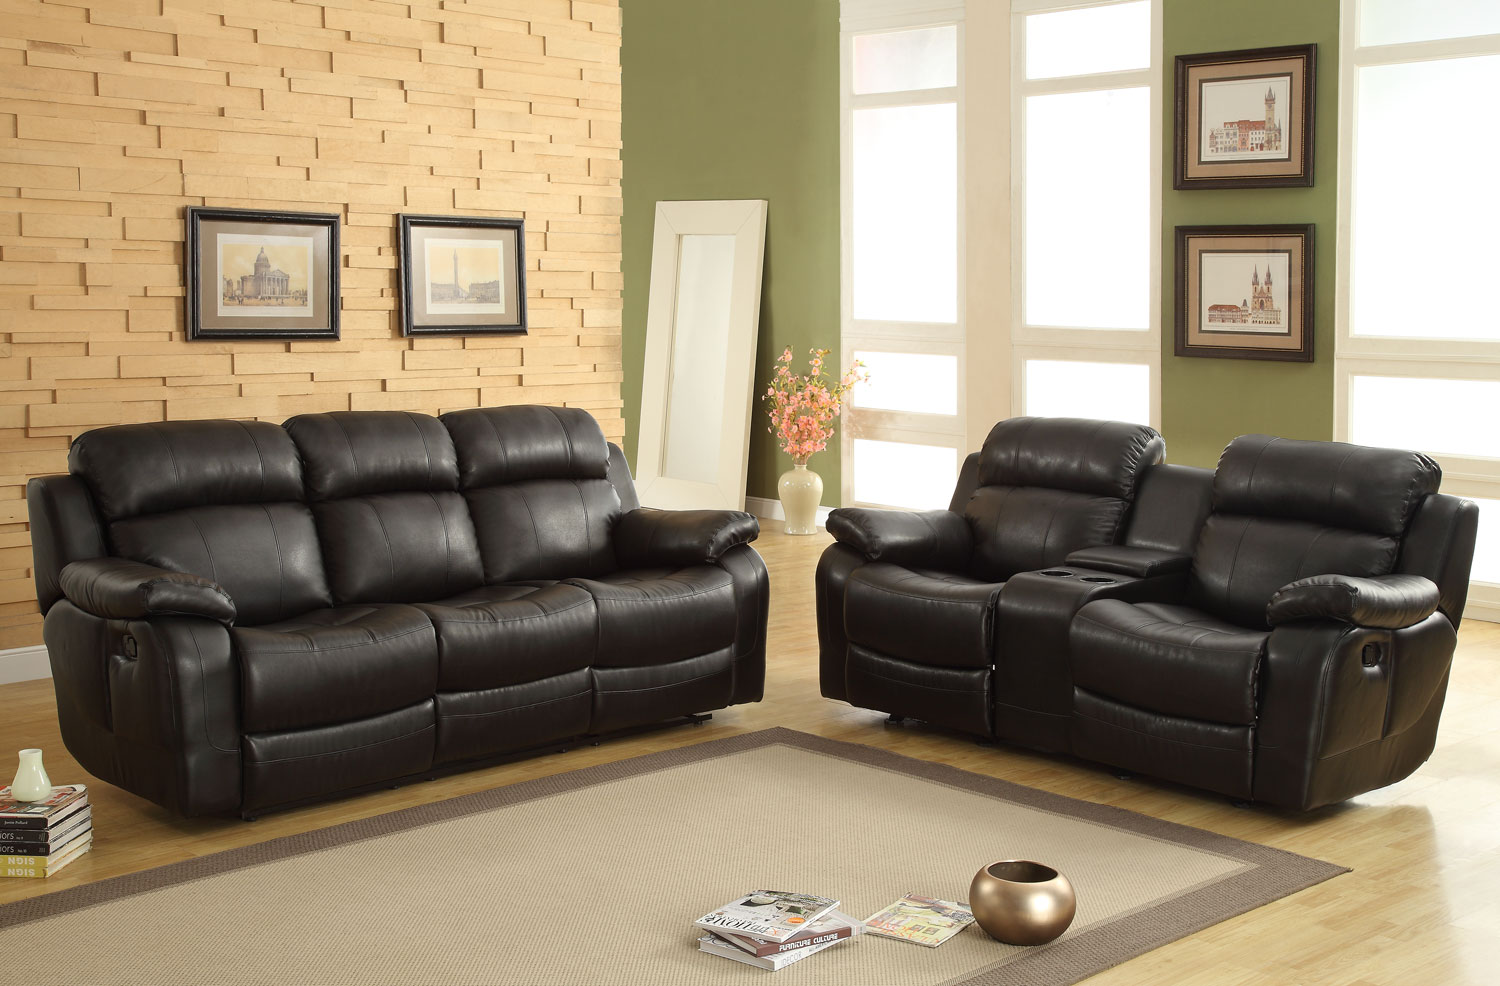 Homelegance Marille Reclining Sofa Set Black Bonded Leather Match